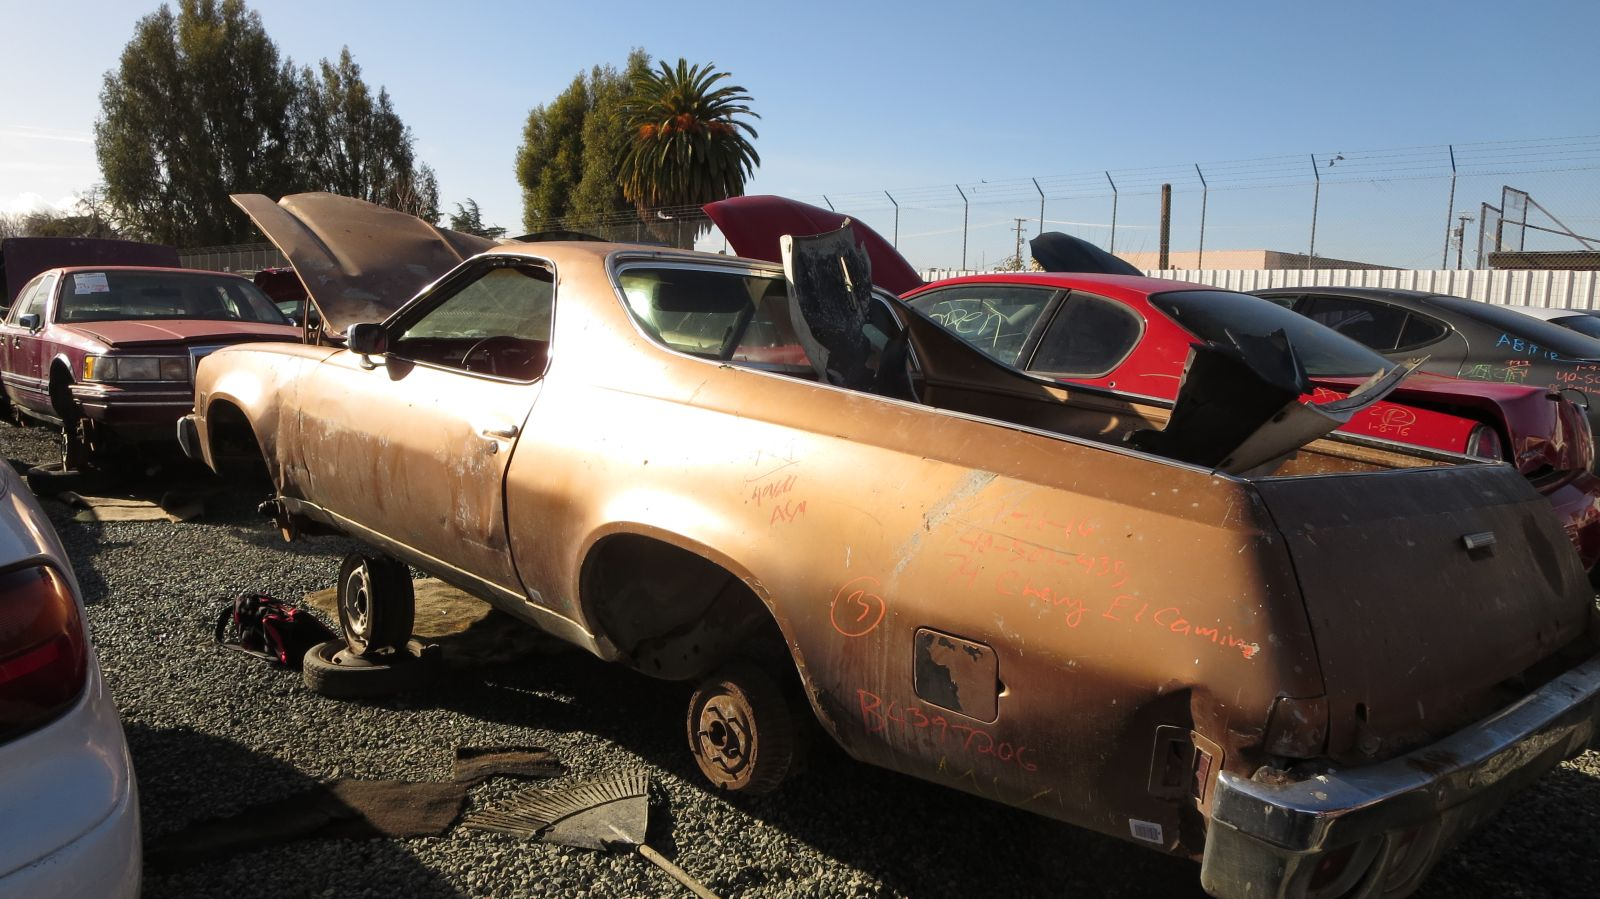 hight resolution of 1974 chevrolet el camino in california junkyard lh rear view 2016 murilee martin